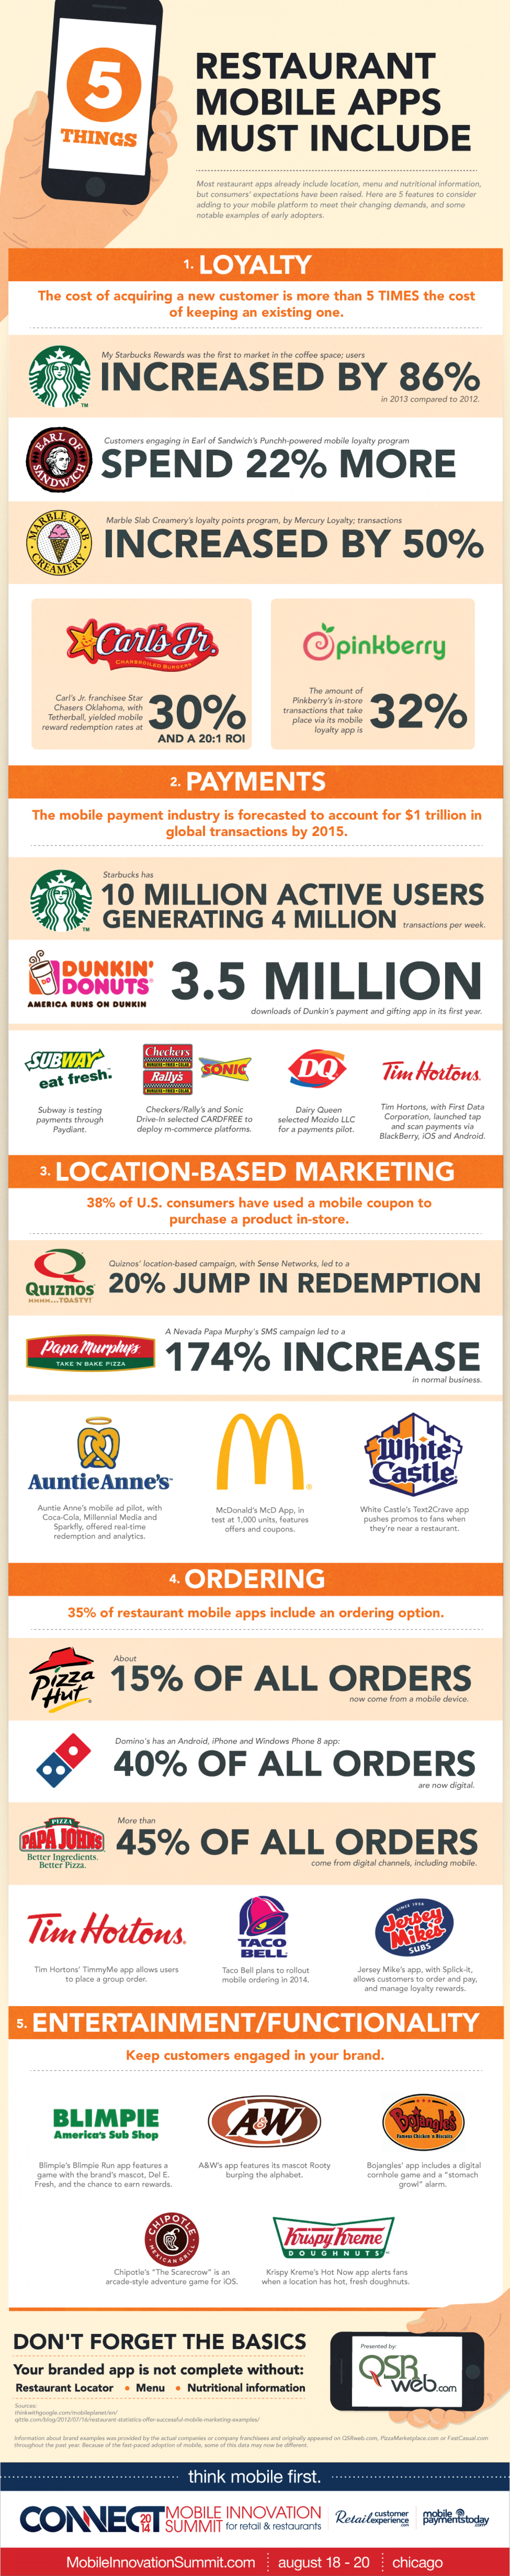 Five Things Your Restaurant Mobile App Must Include Infographic